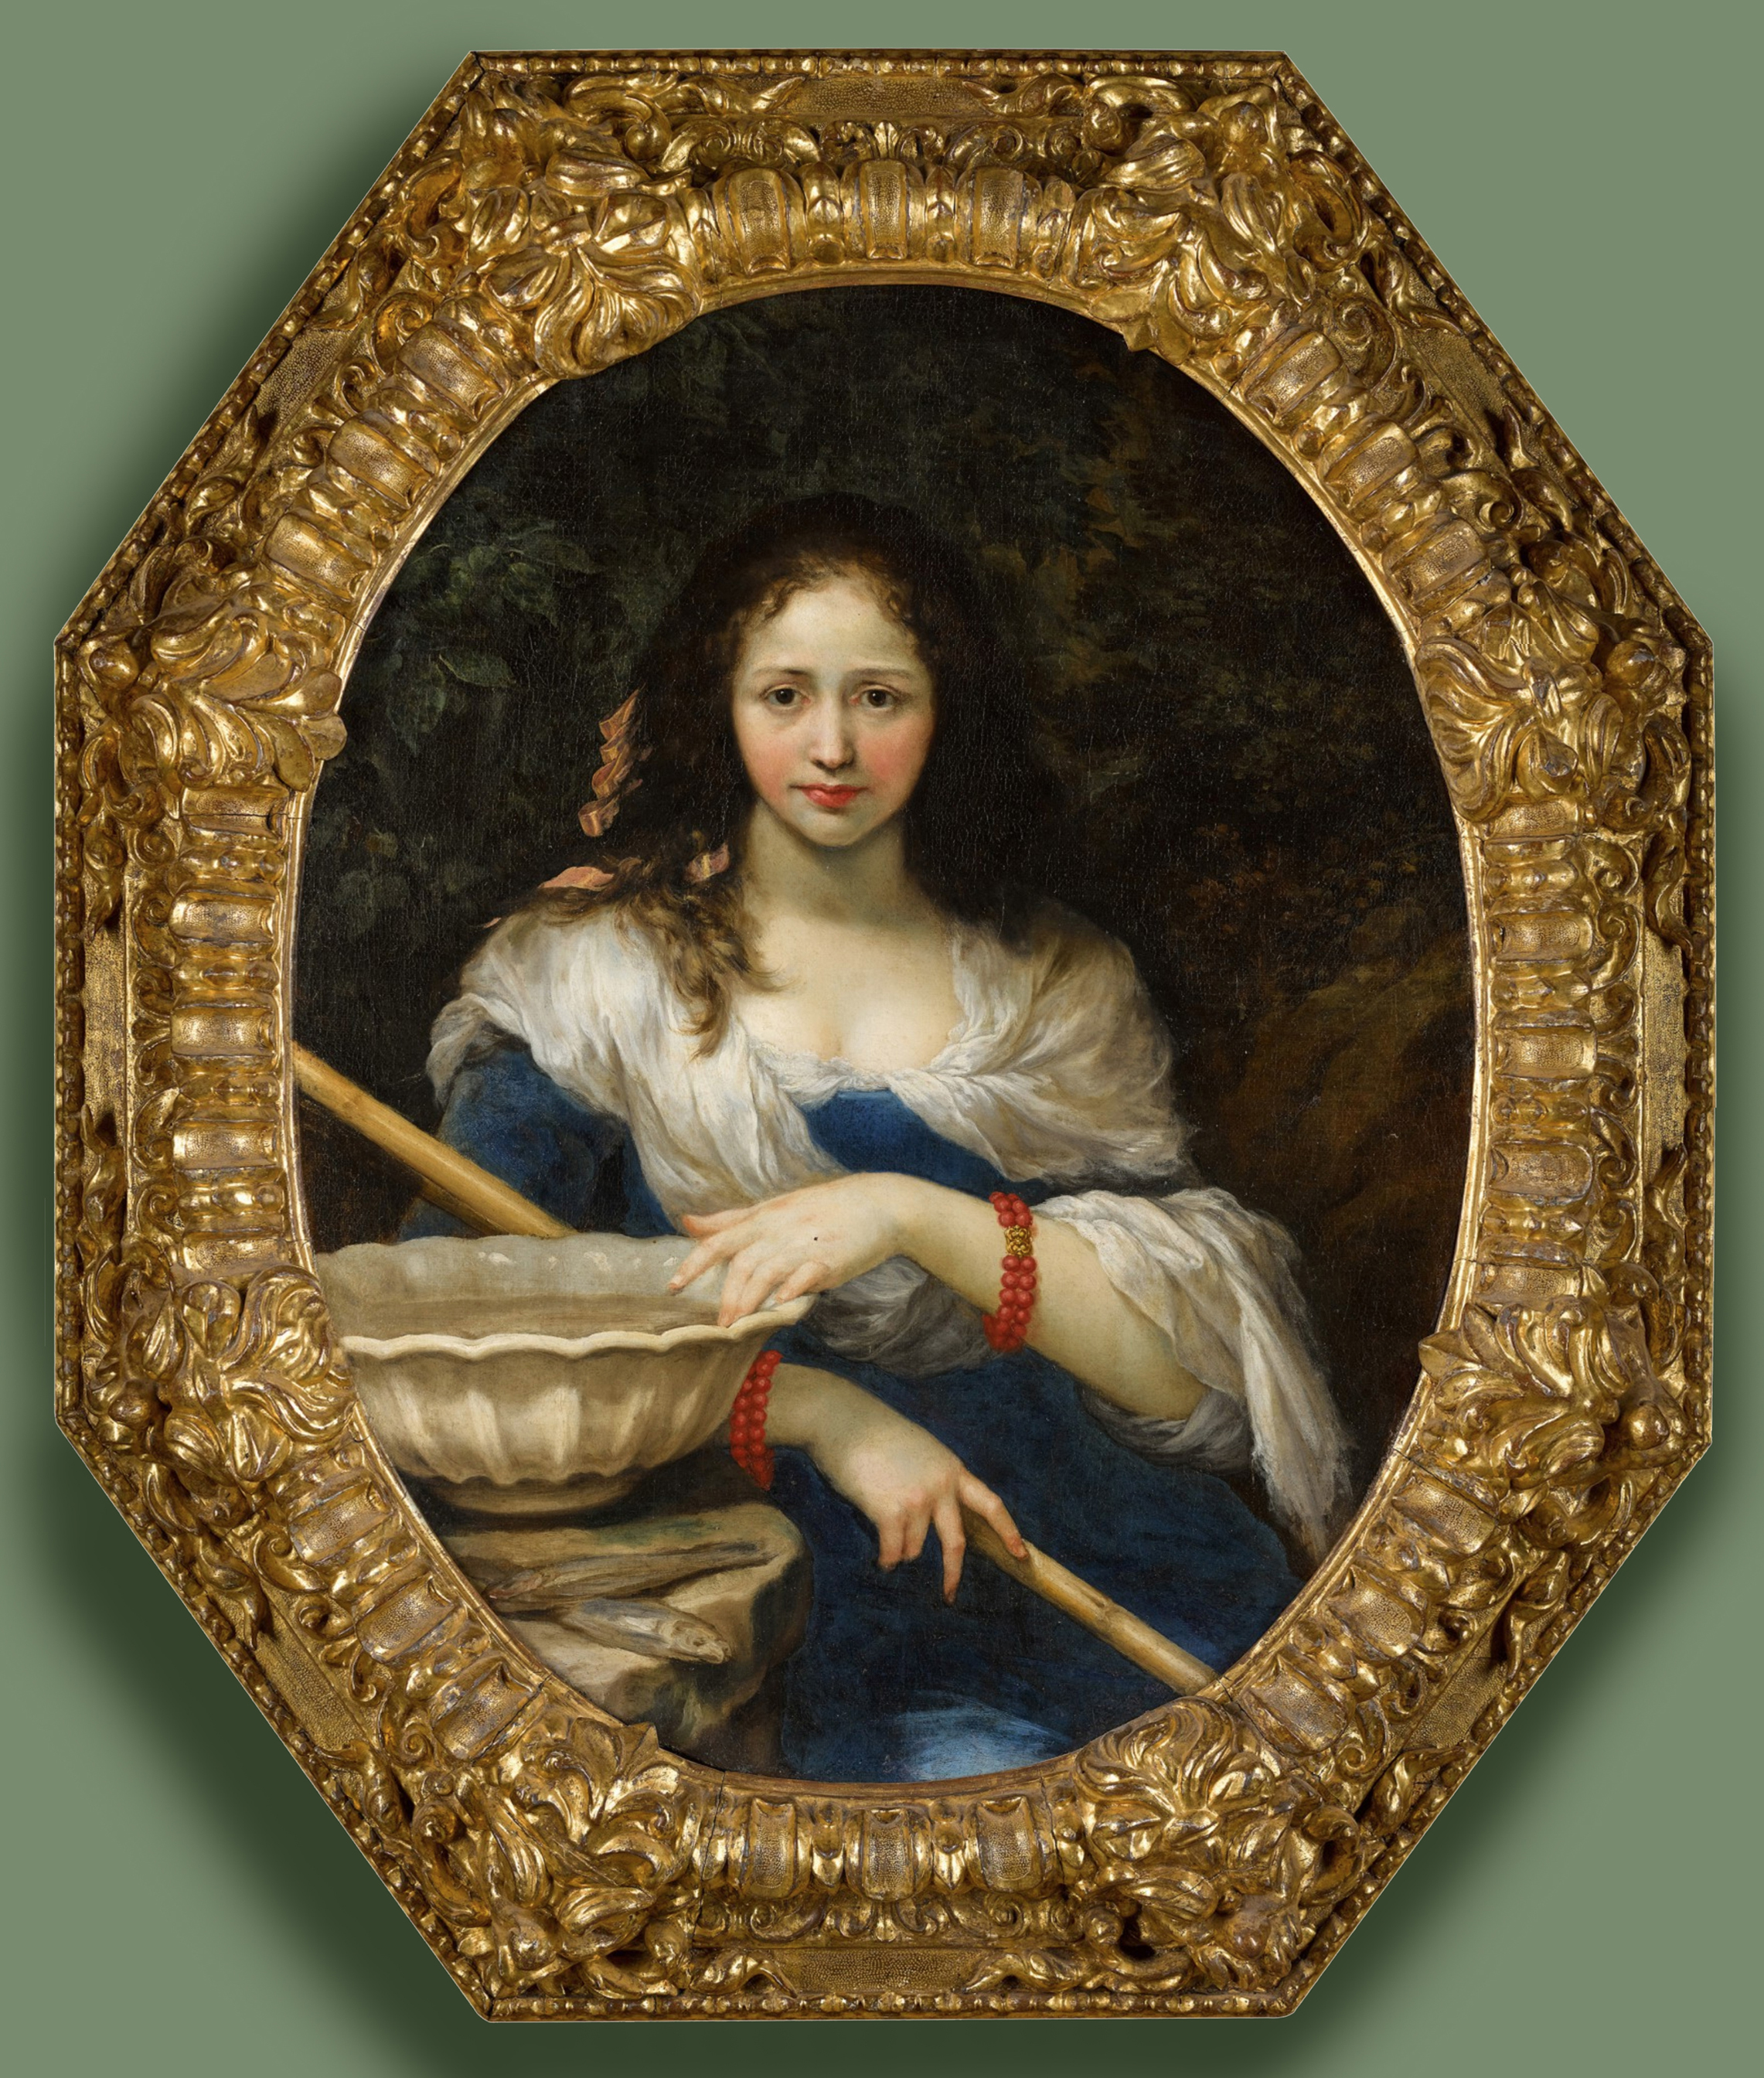 0 Il Volterrano Woman with a fishing rod or Fraud Sothebys 7July2021 Lot 41